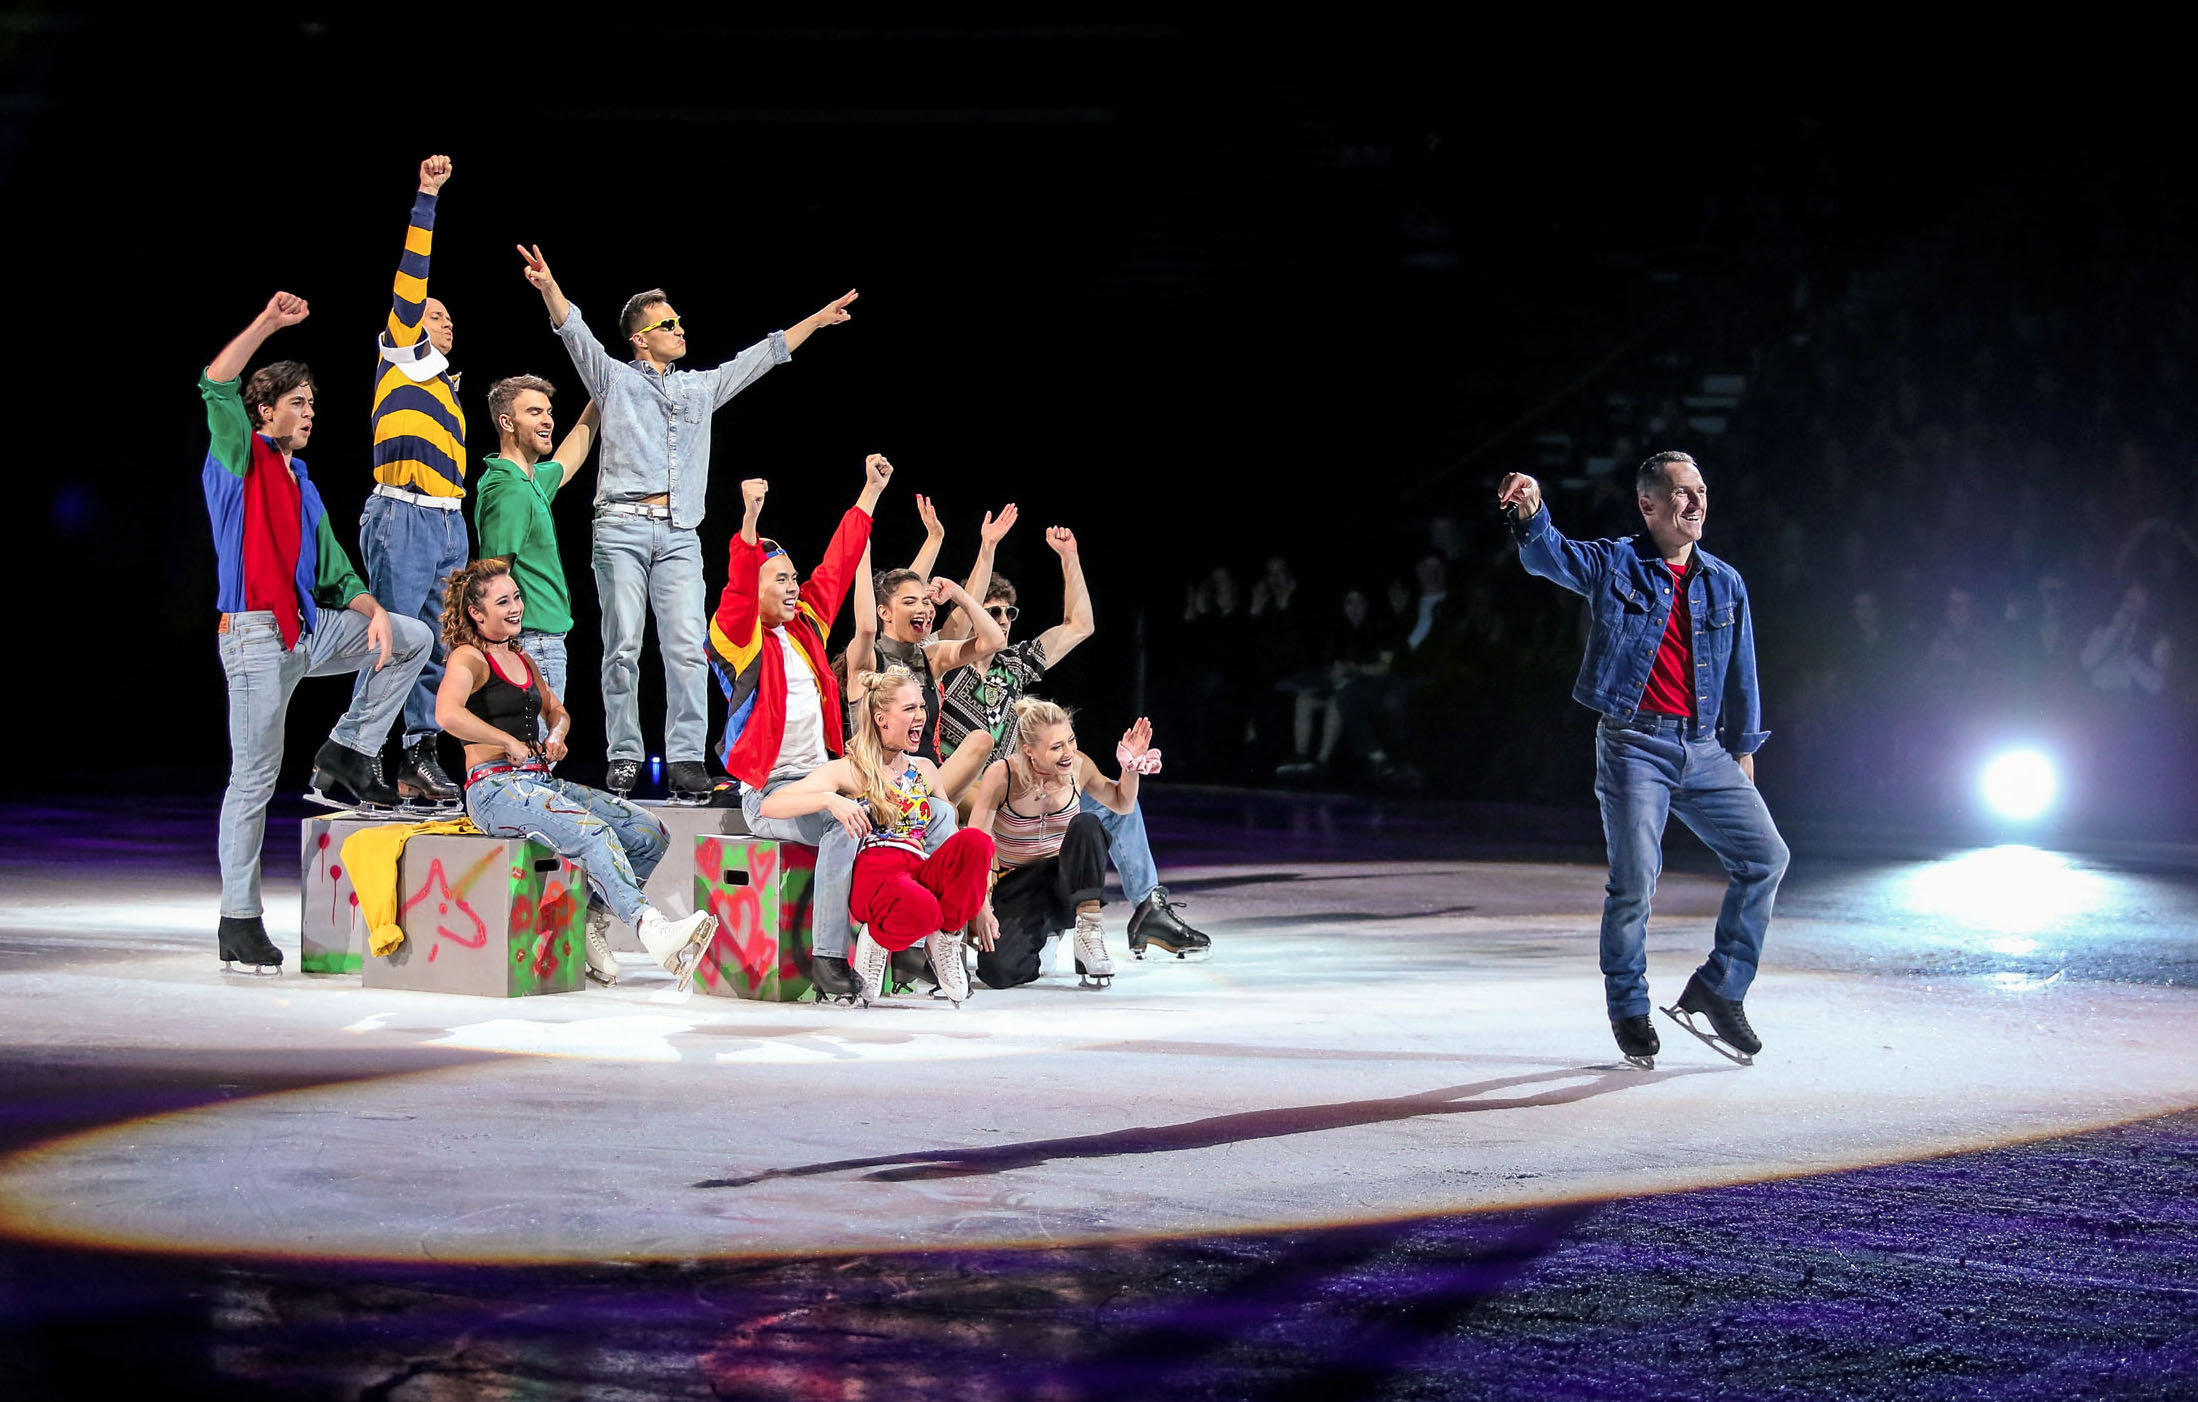 NORTH AMERICA�S PREMIER <br>FIGURE SKATING TOUR